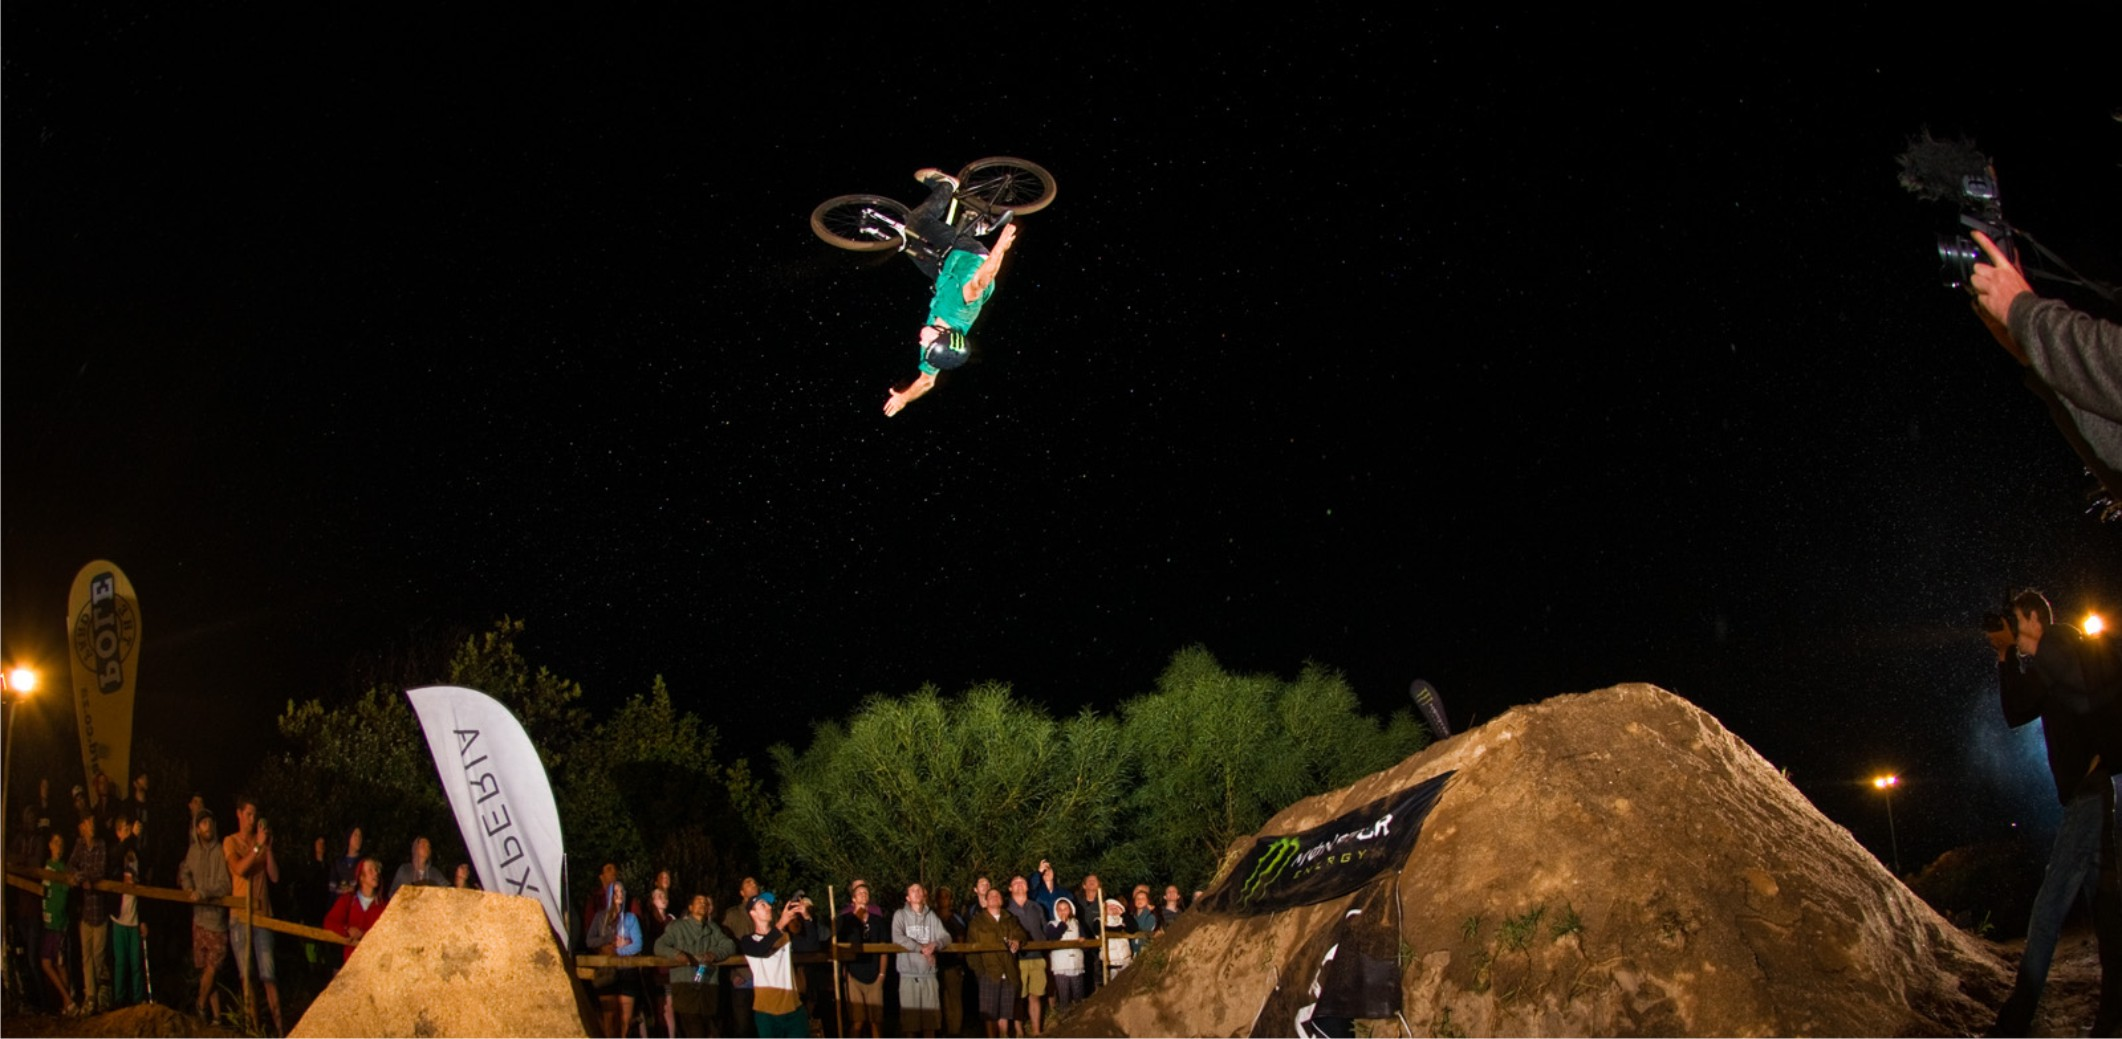 The Night Harvest BMX and MTB Dirt Contest